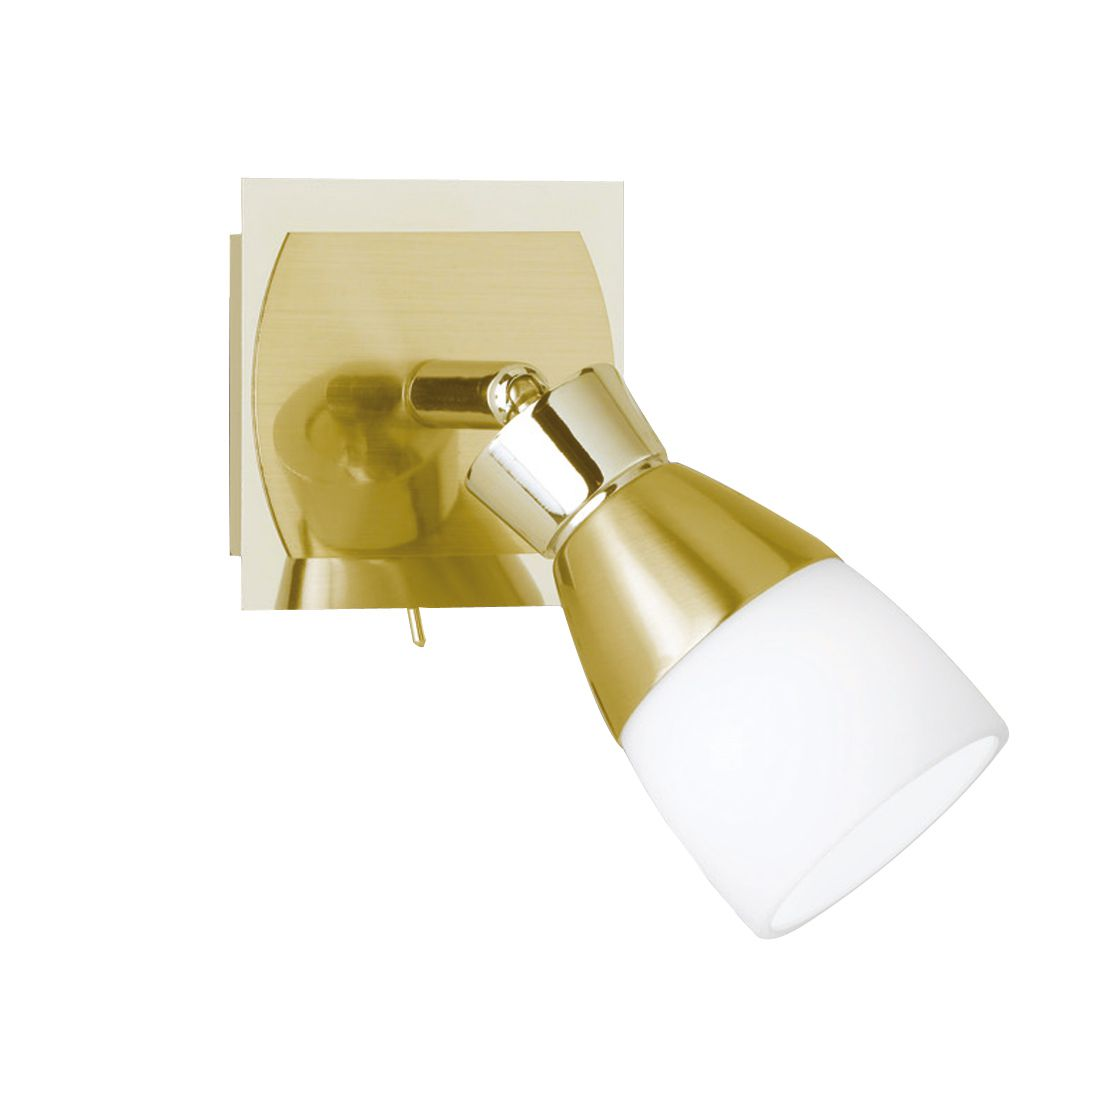 Spot mural LED orientable, aspect laiton